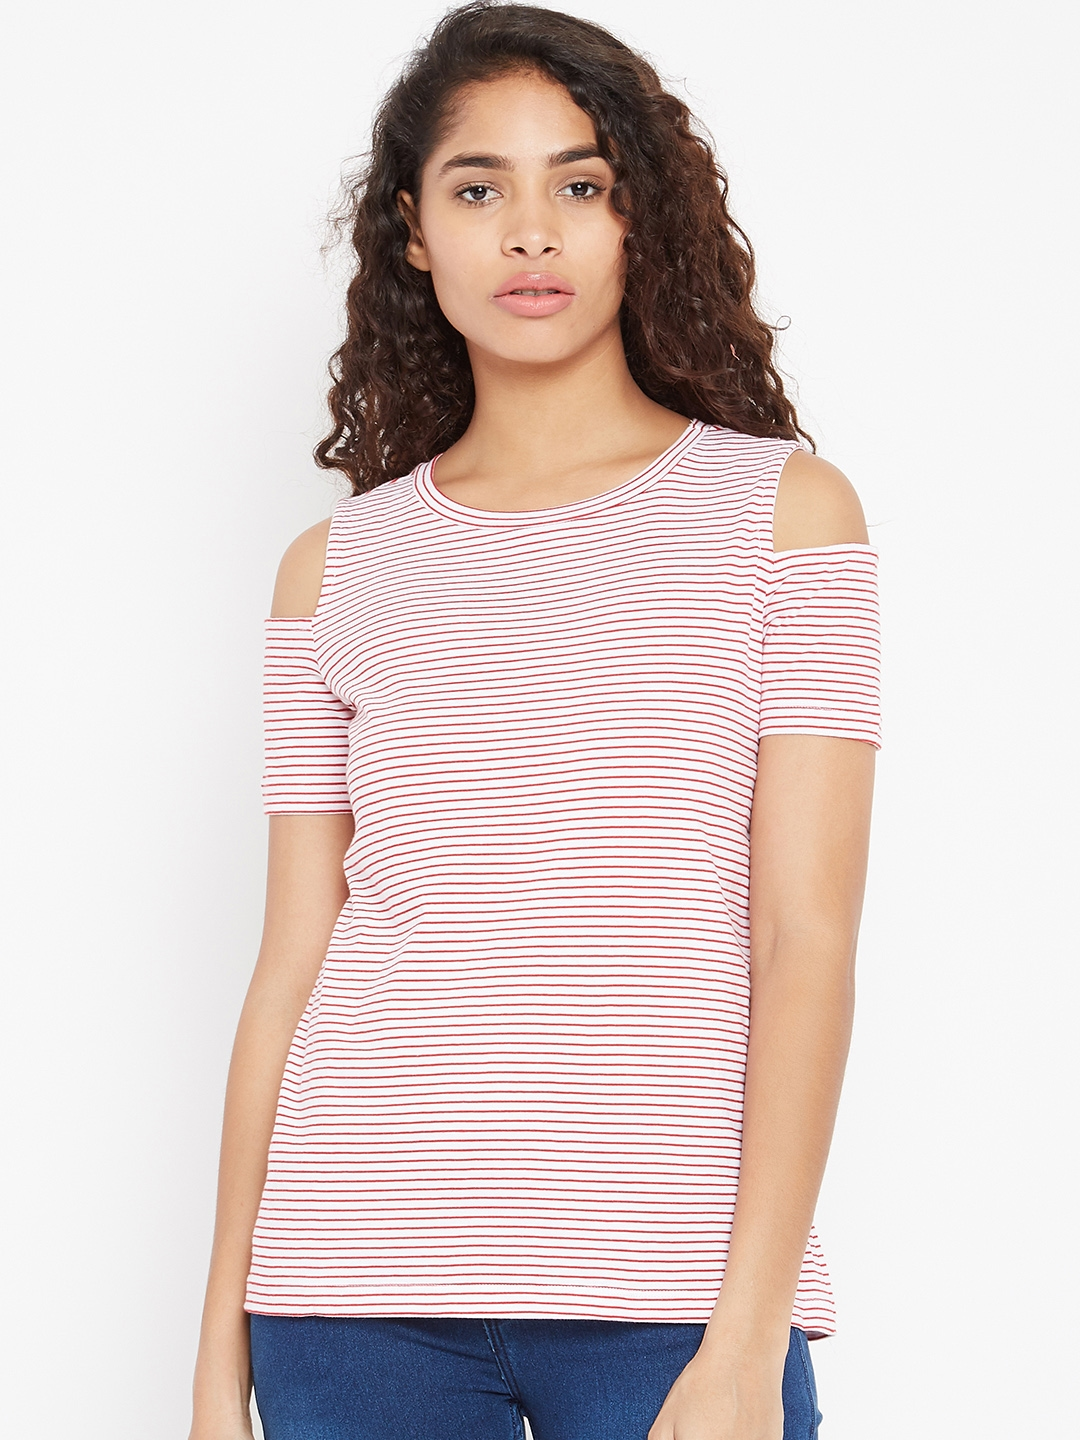 586e2c976f76b9 Buy Cottonworld Women White   Red Striped Cold Shoulder Top - Tops ...